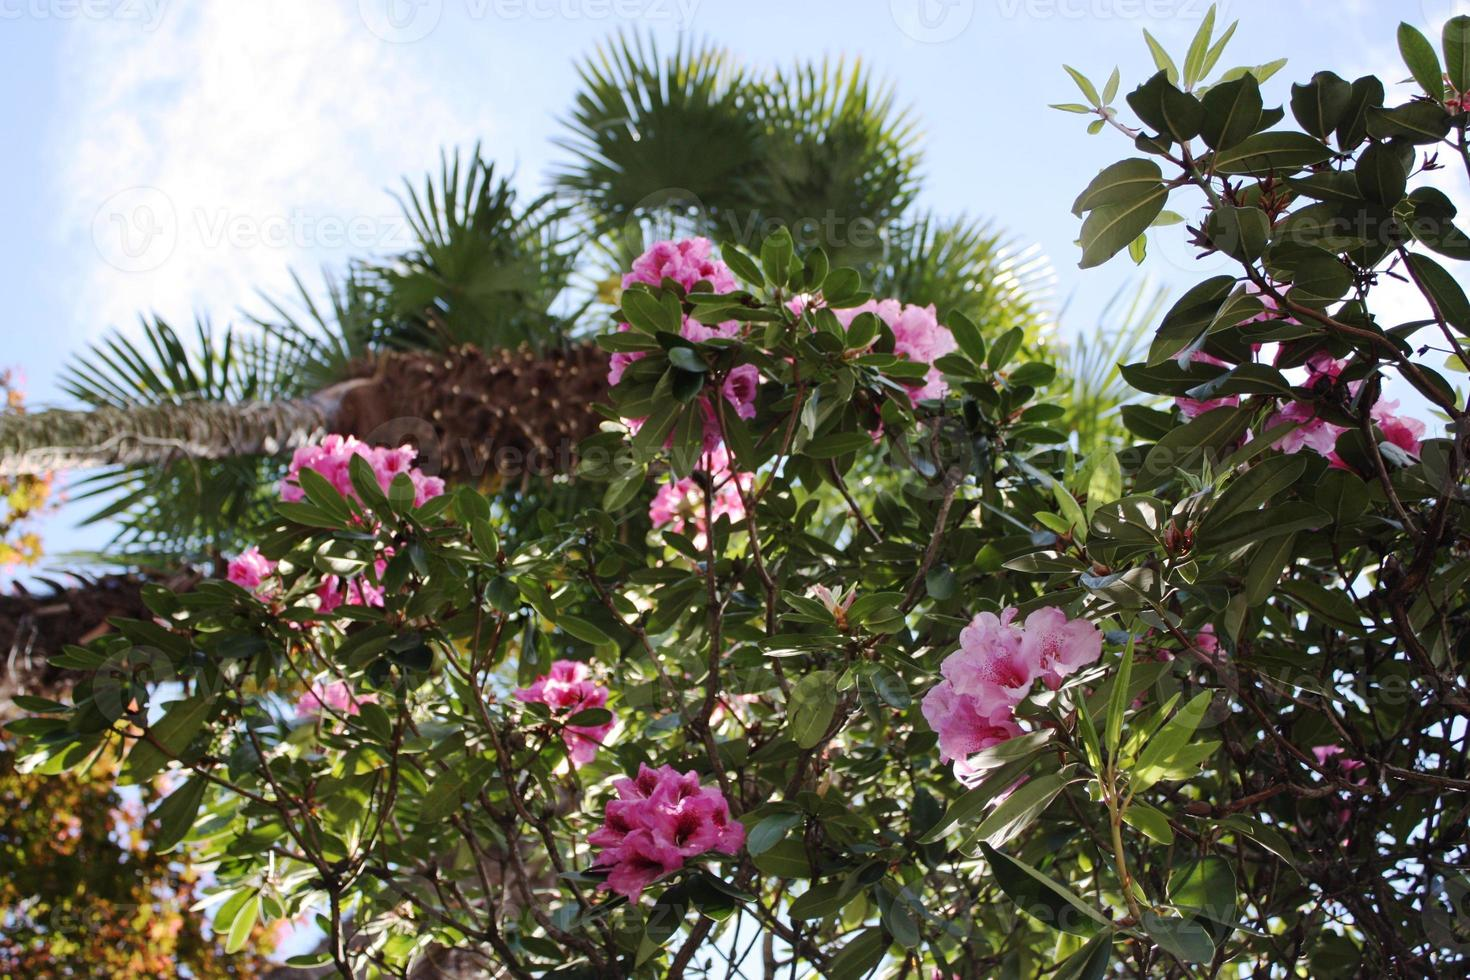 Rhododendron Hybride 'Berliner Liebe' Beautiful colorful flower under big palms photo